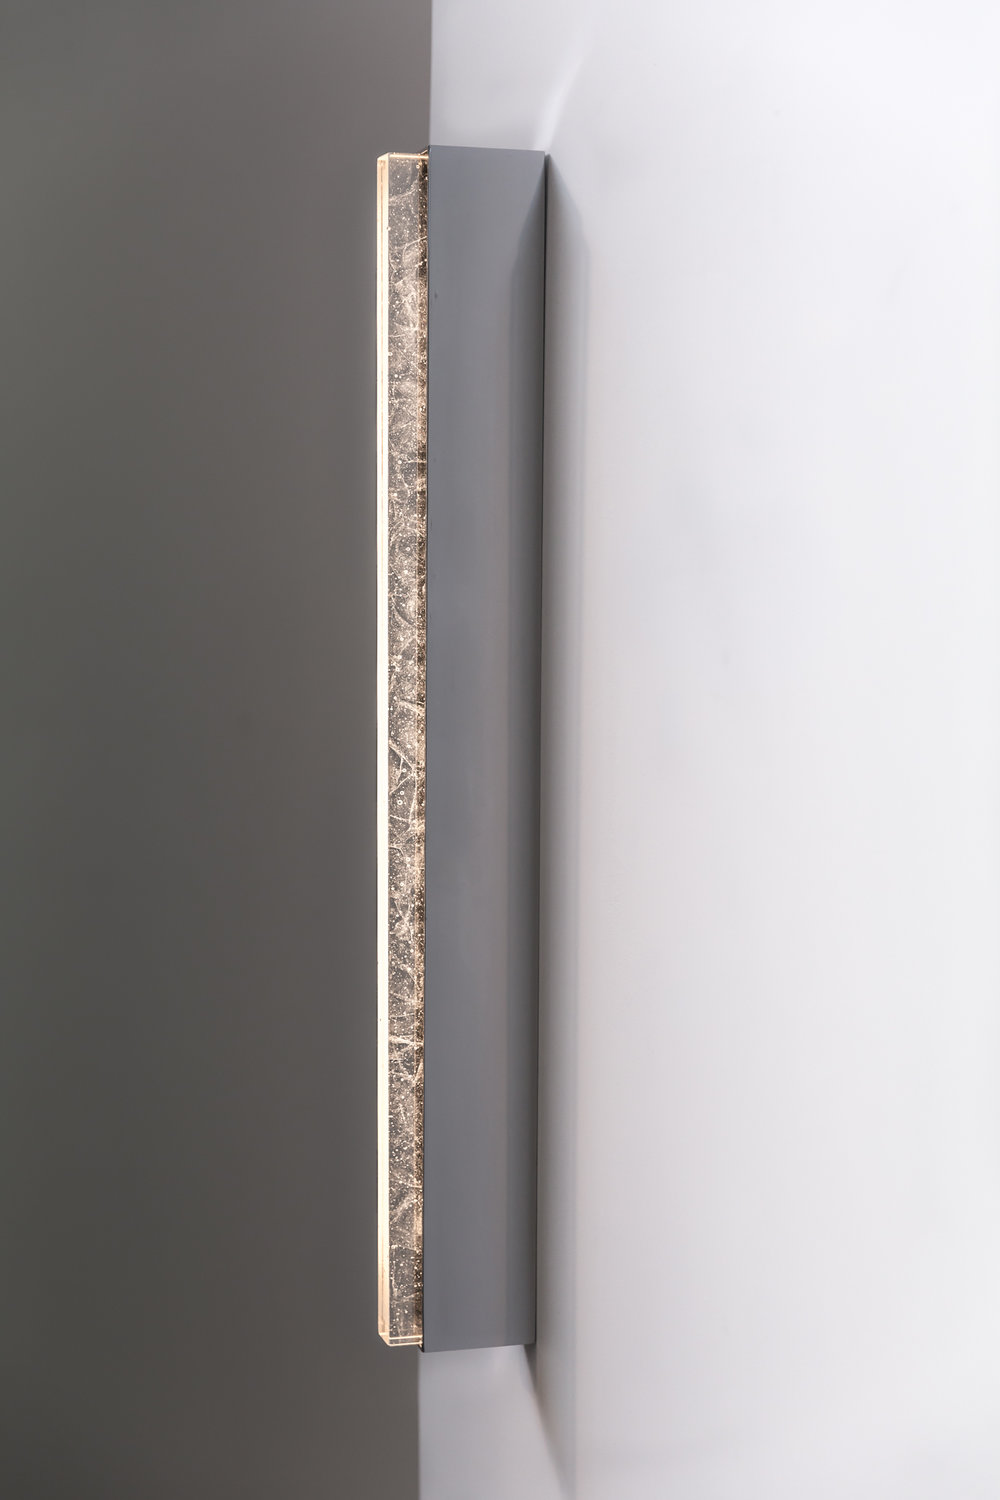 Shown in Polished Nickel with Crystal Glass